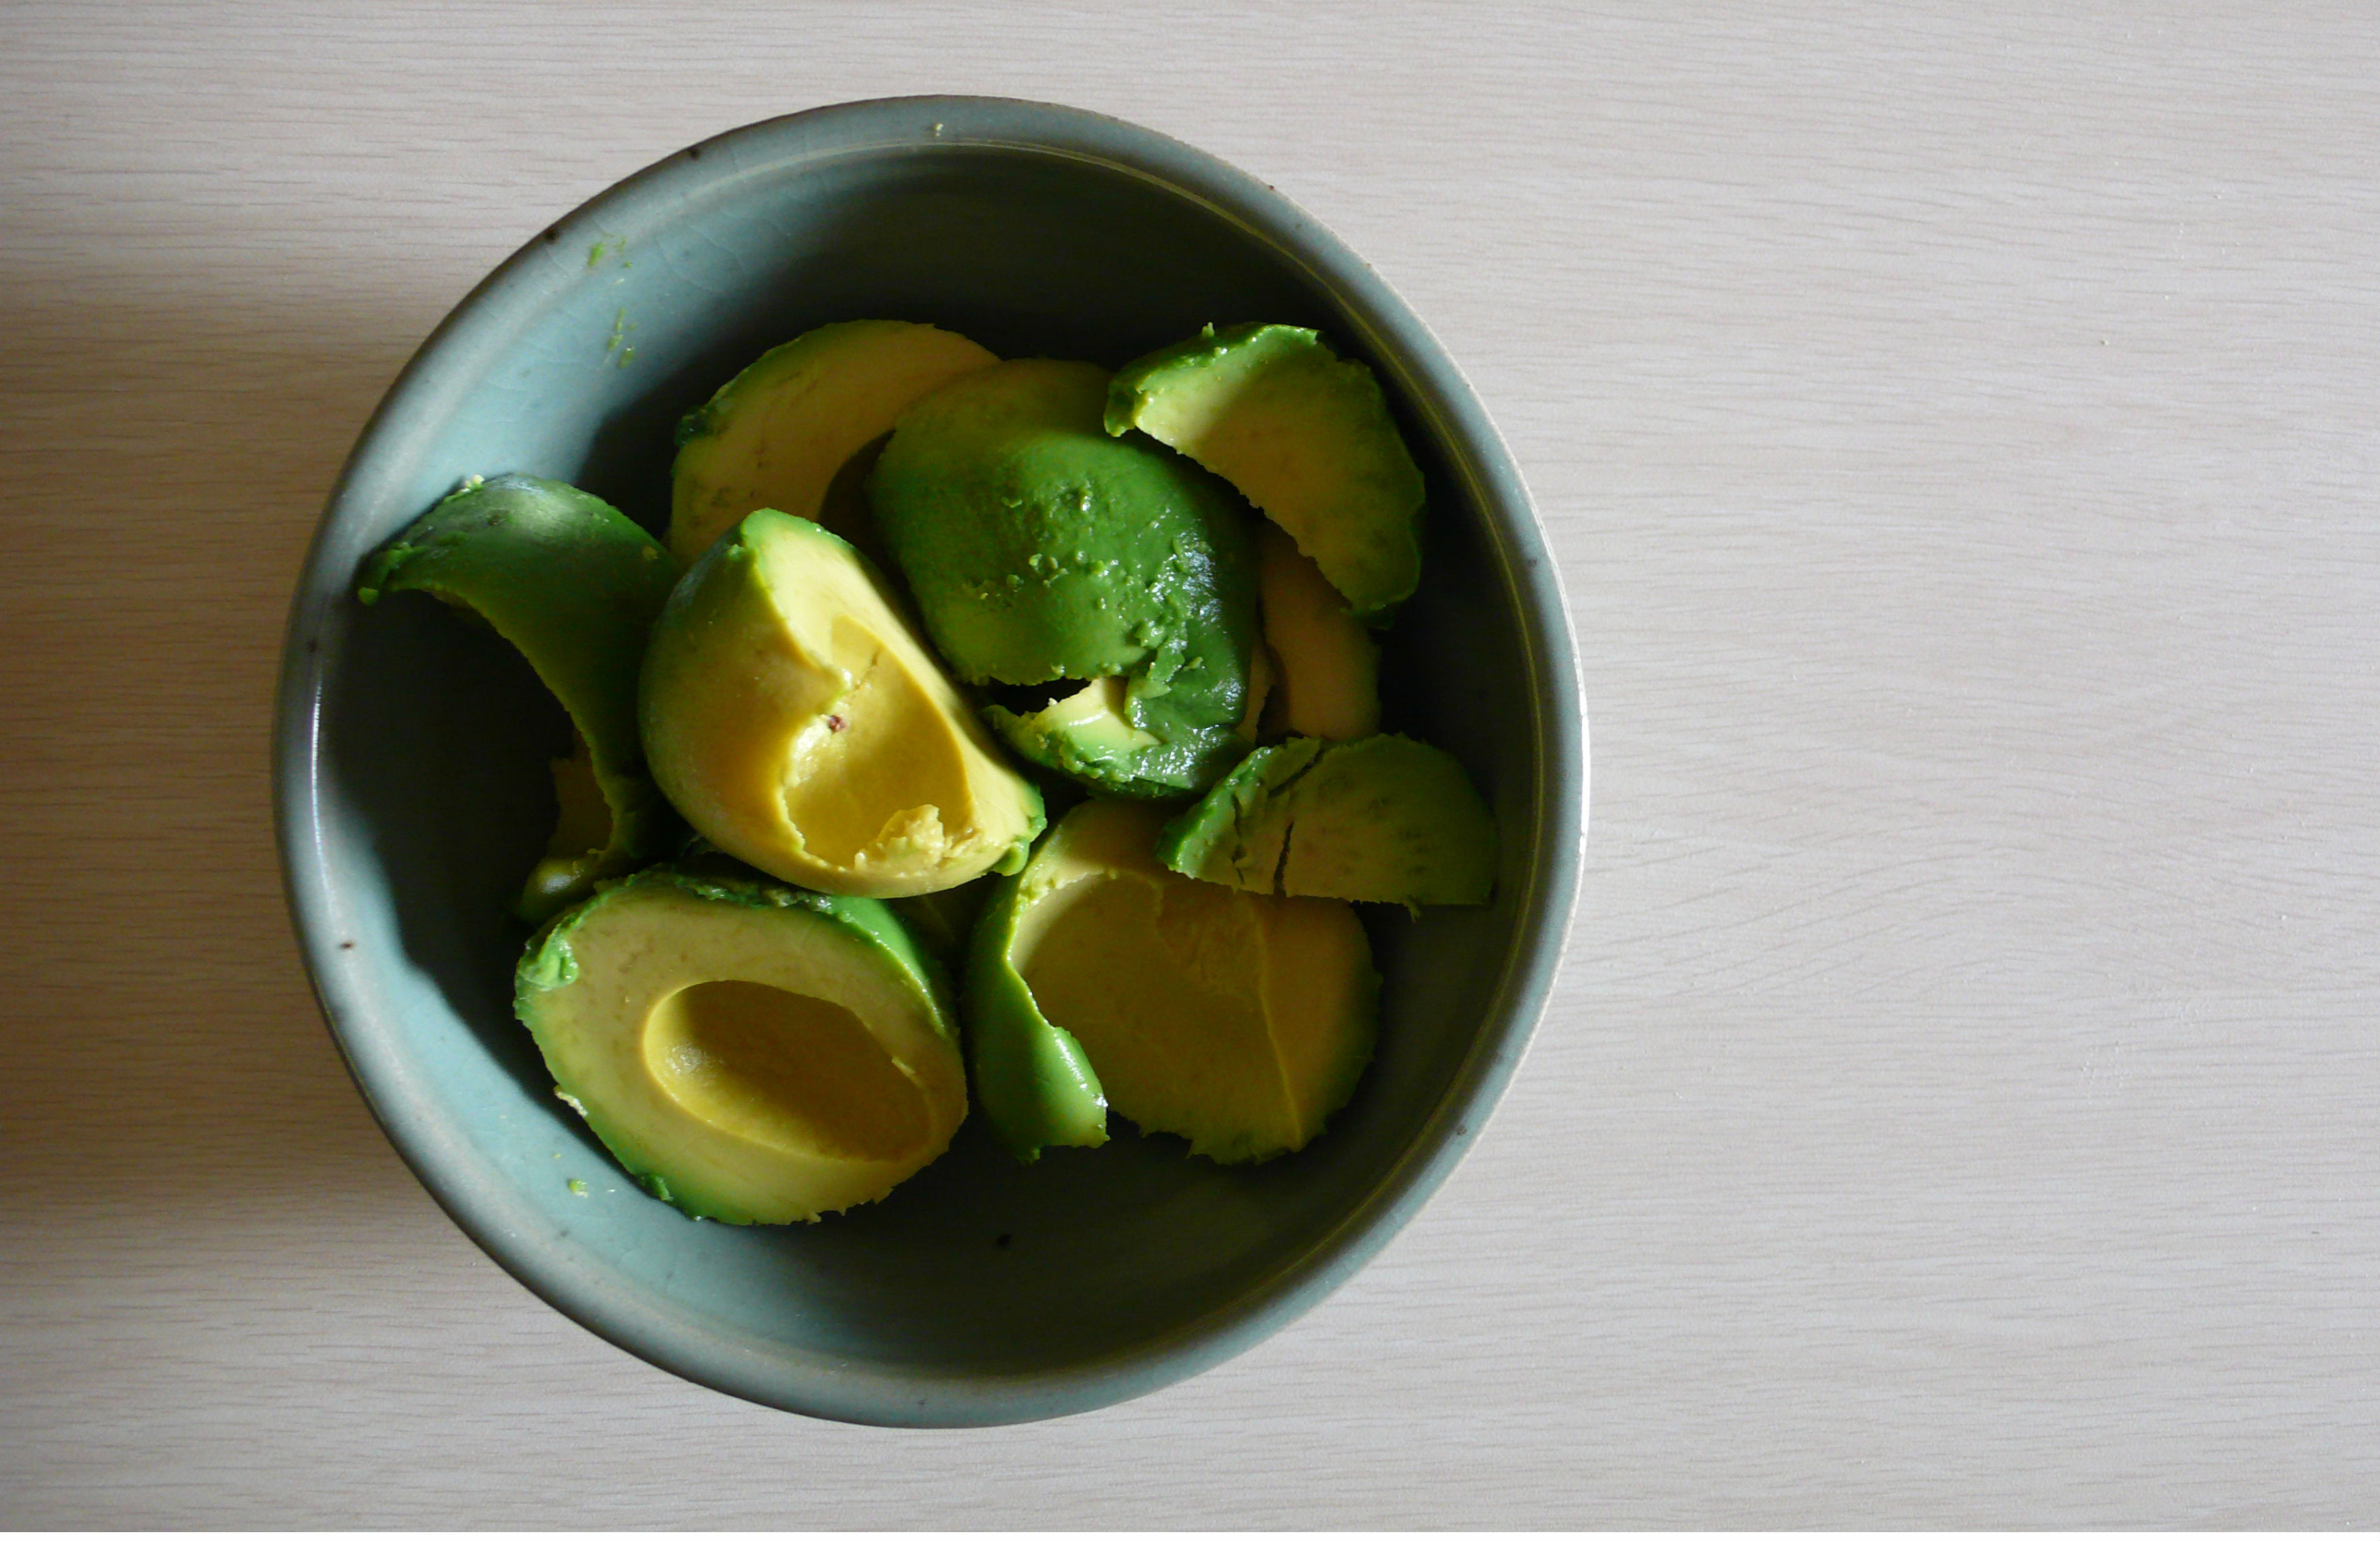 The rise of the avocado